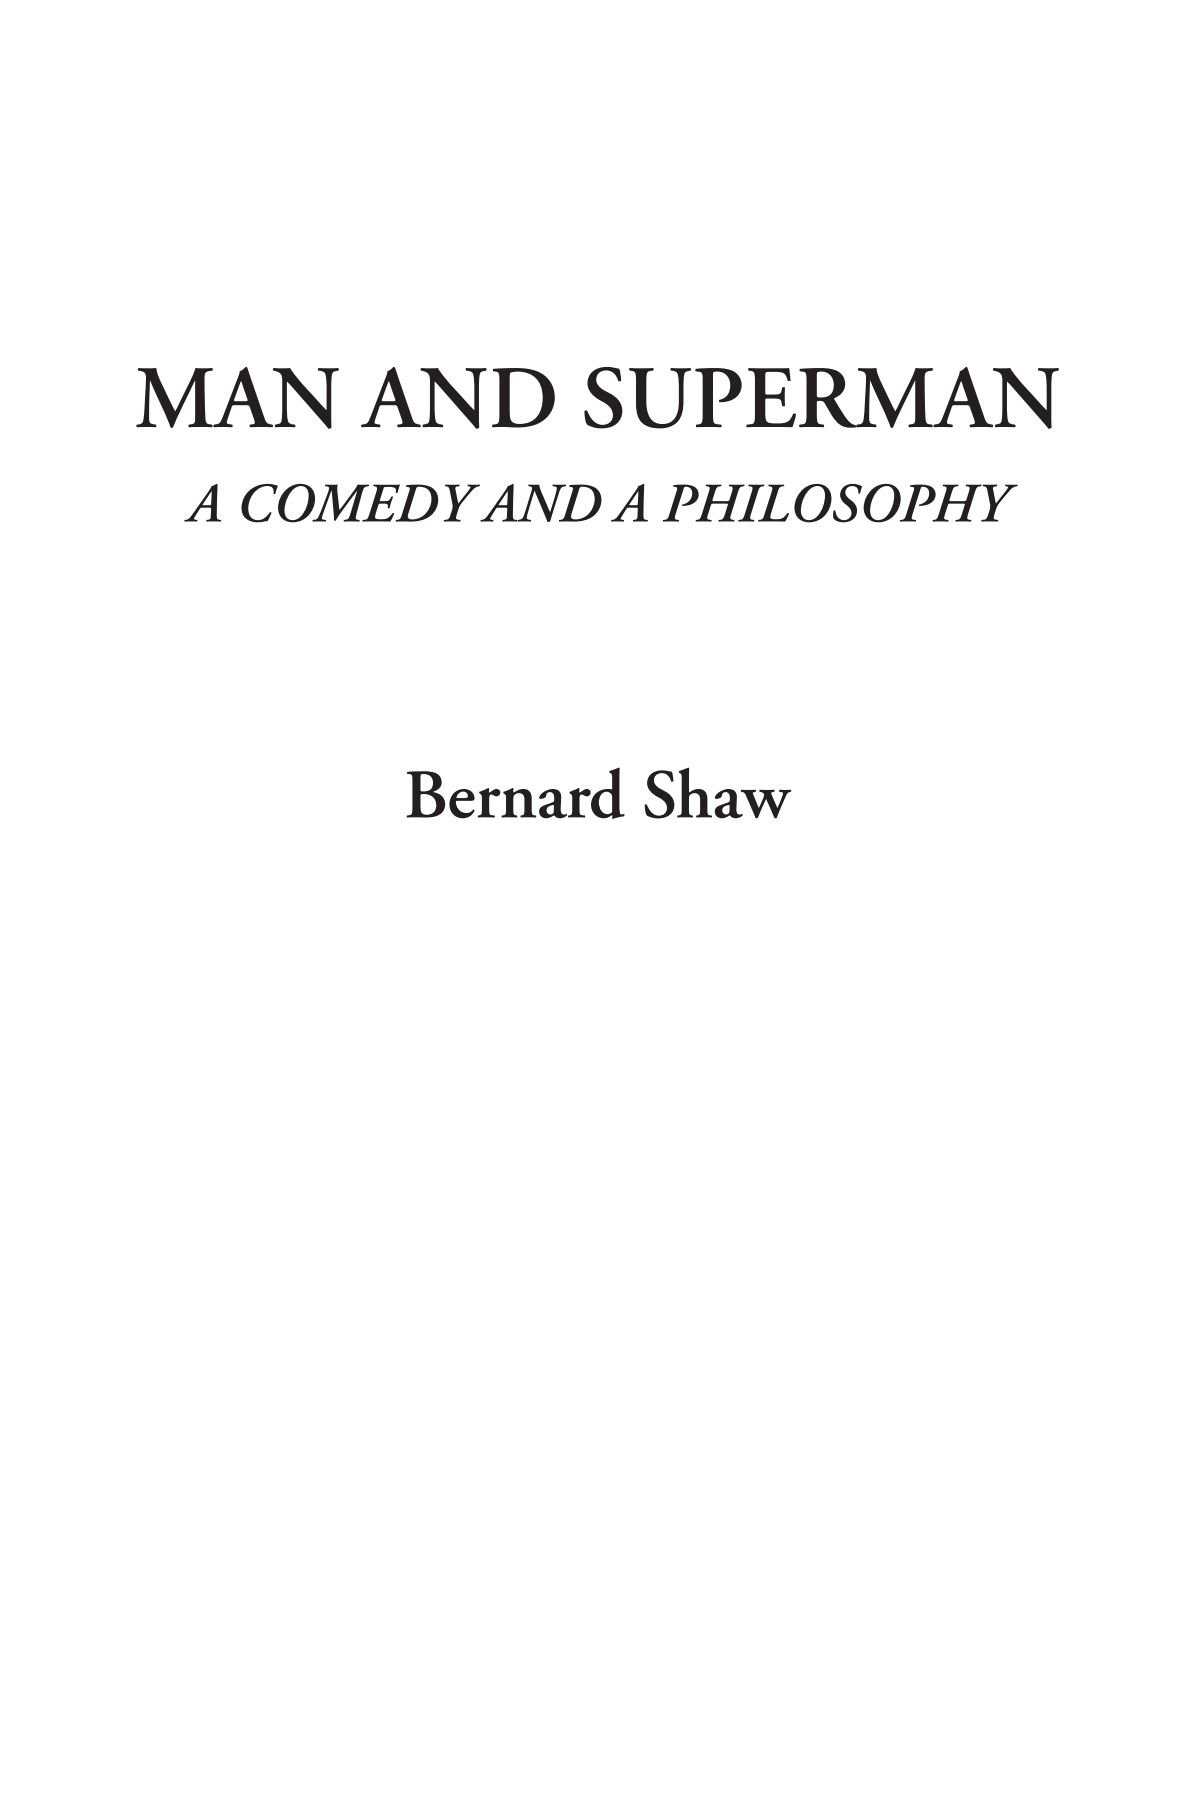 Man and Superman (A Comedy and a Philosophy) pdf